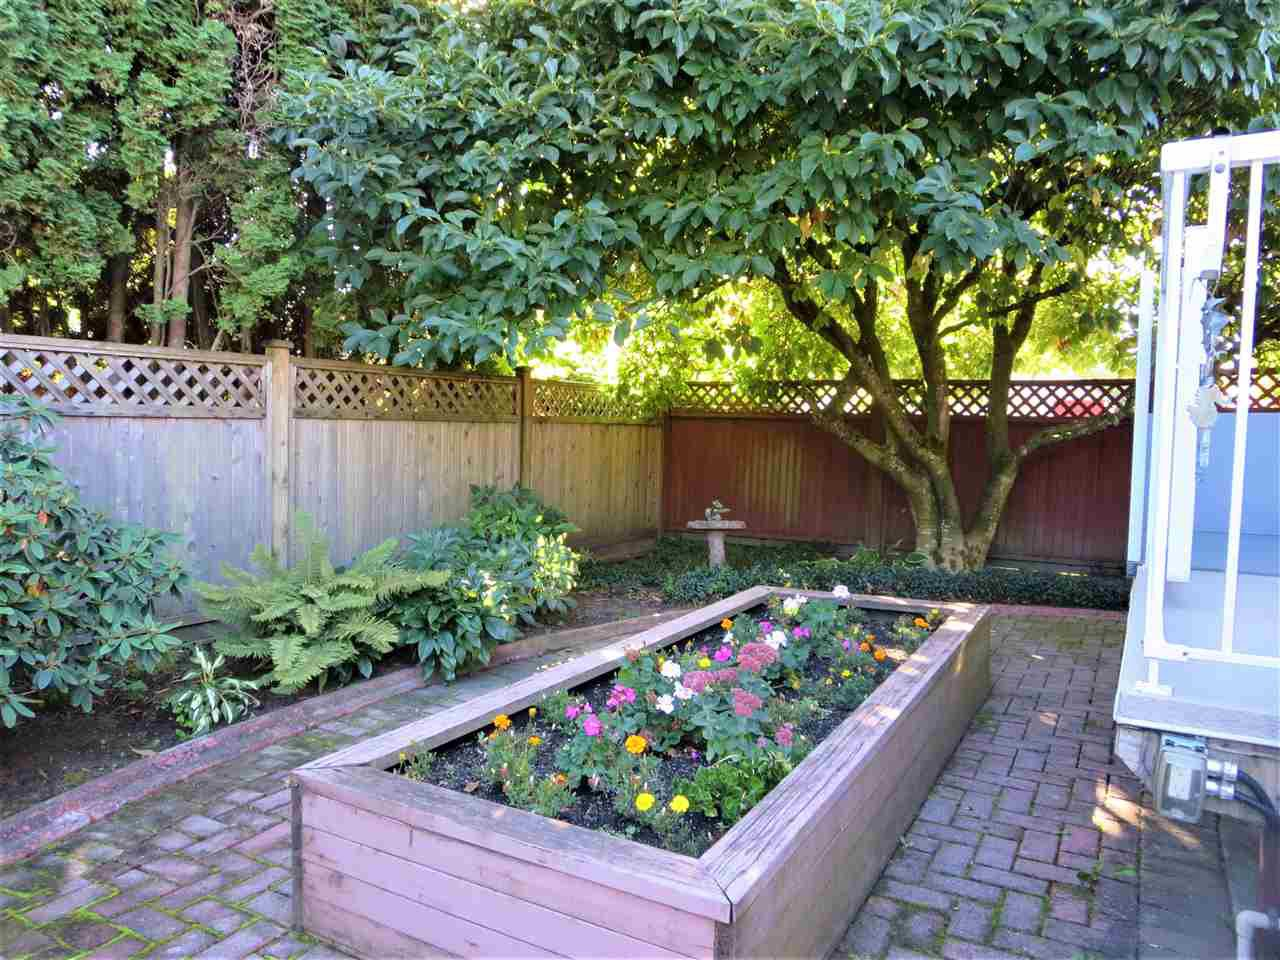 Photo 9: Photos: 10560 HOGARTH Drive in Richmond: Woodwards House for sale : MLS®# R2213924